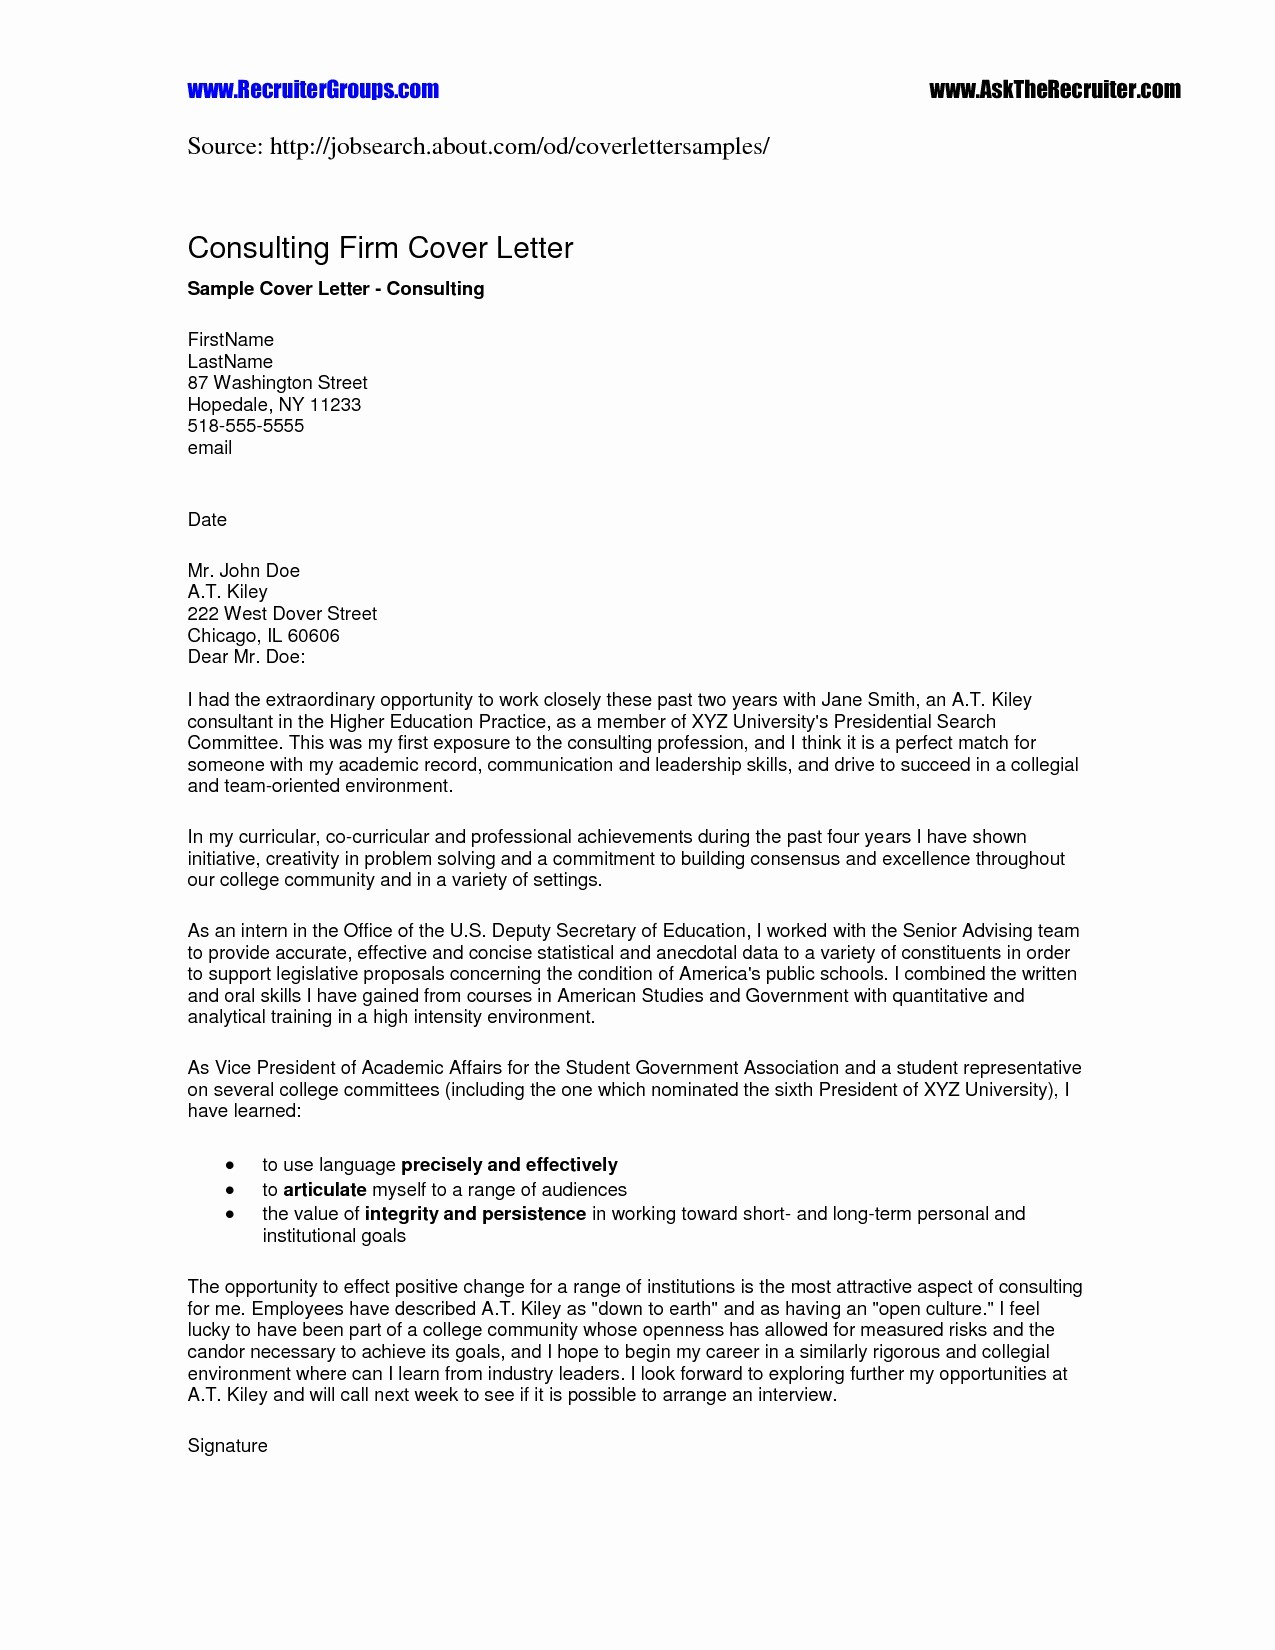 Employment Verification Letter Template Word - Sample Cover Letter for Good Conduct Certificate Fresh Reference